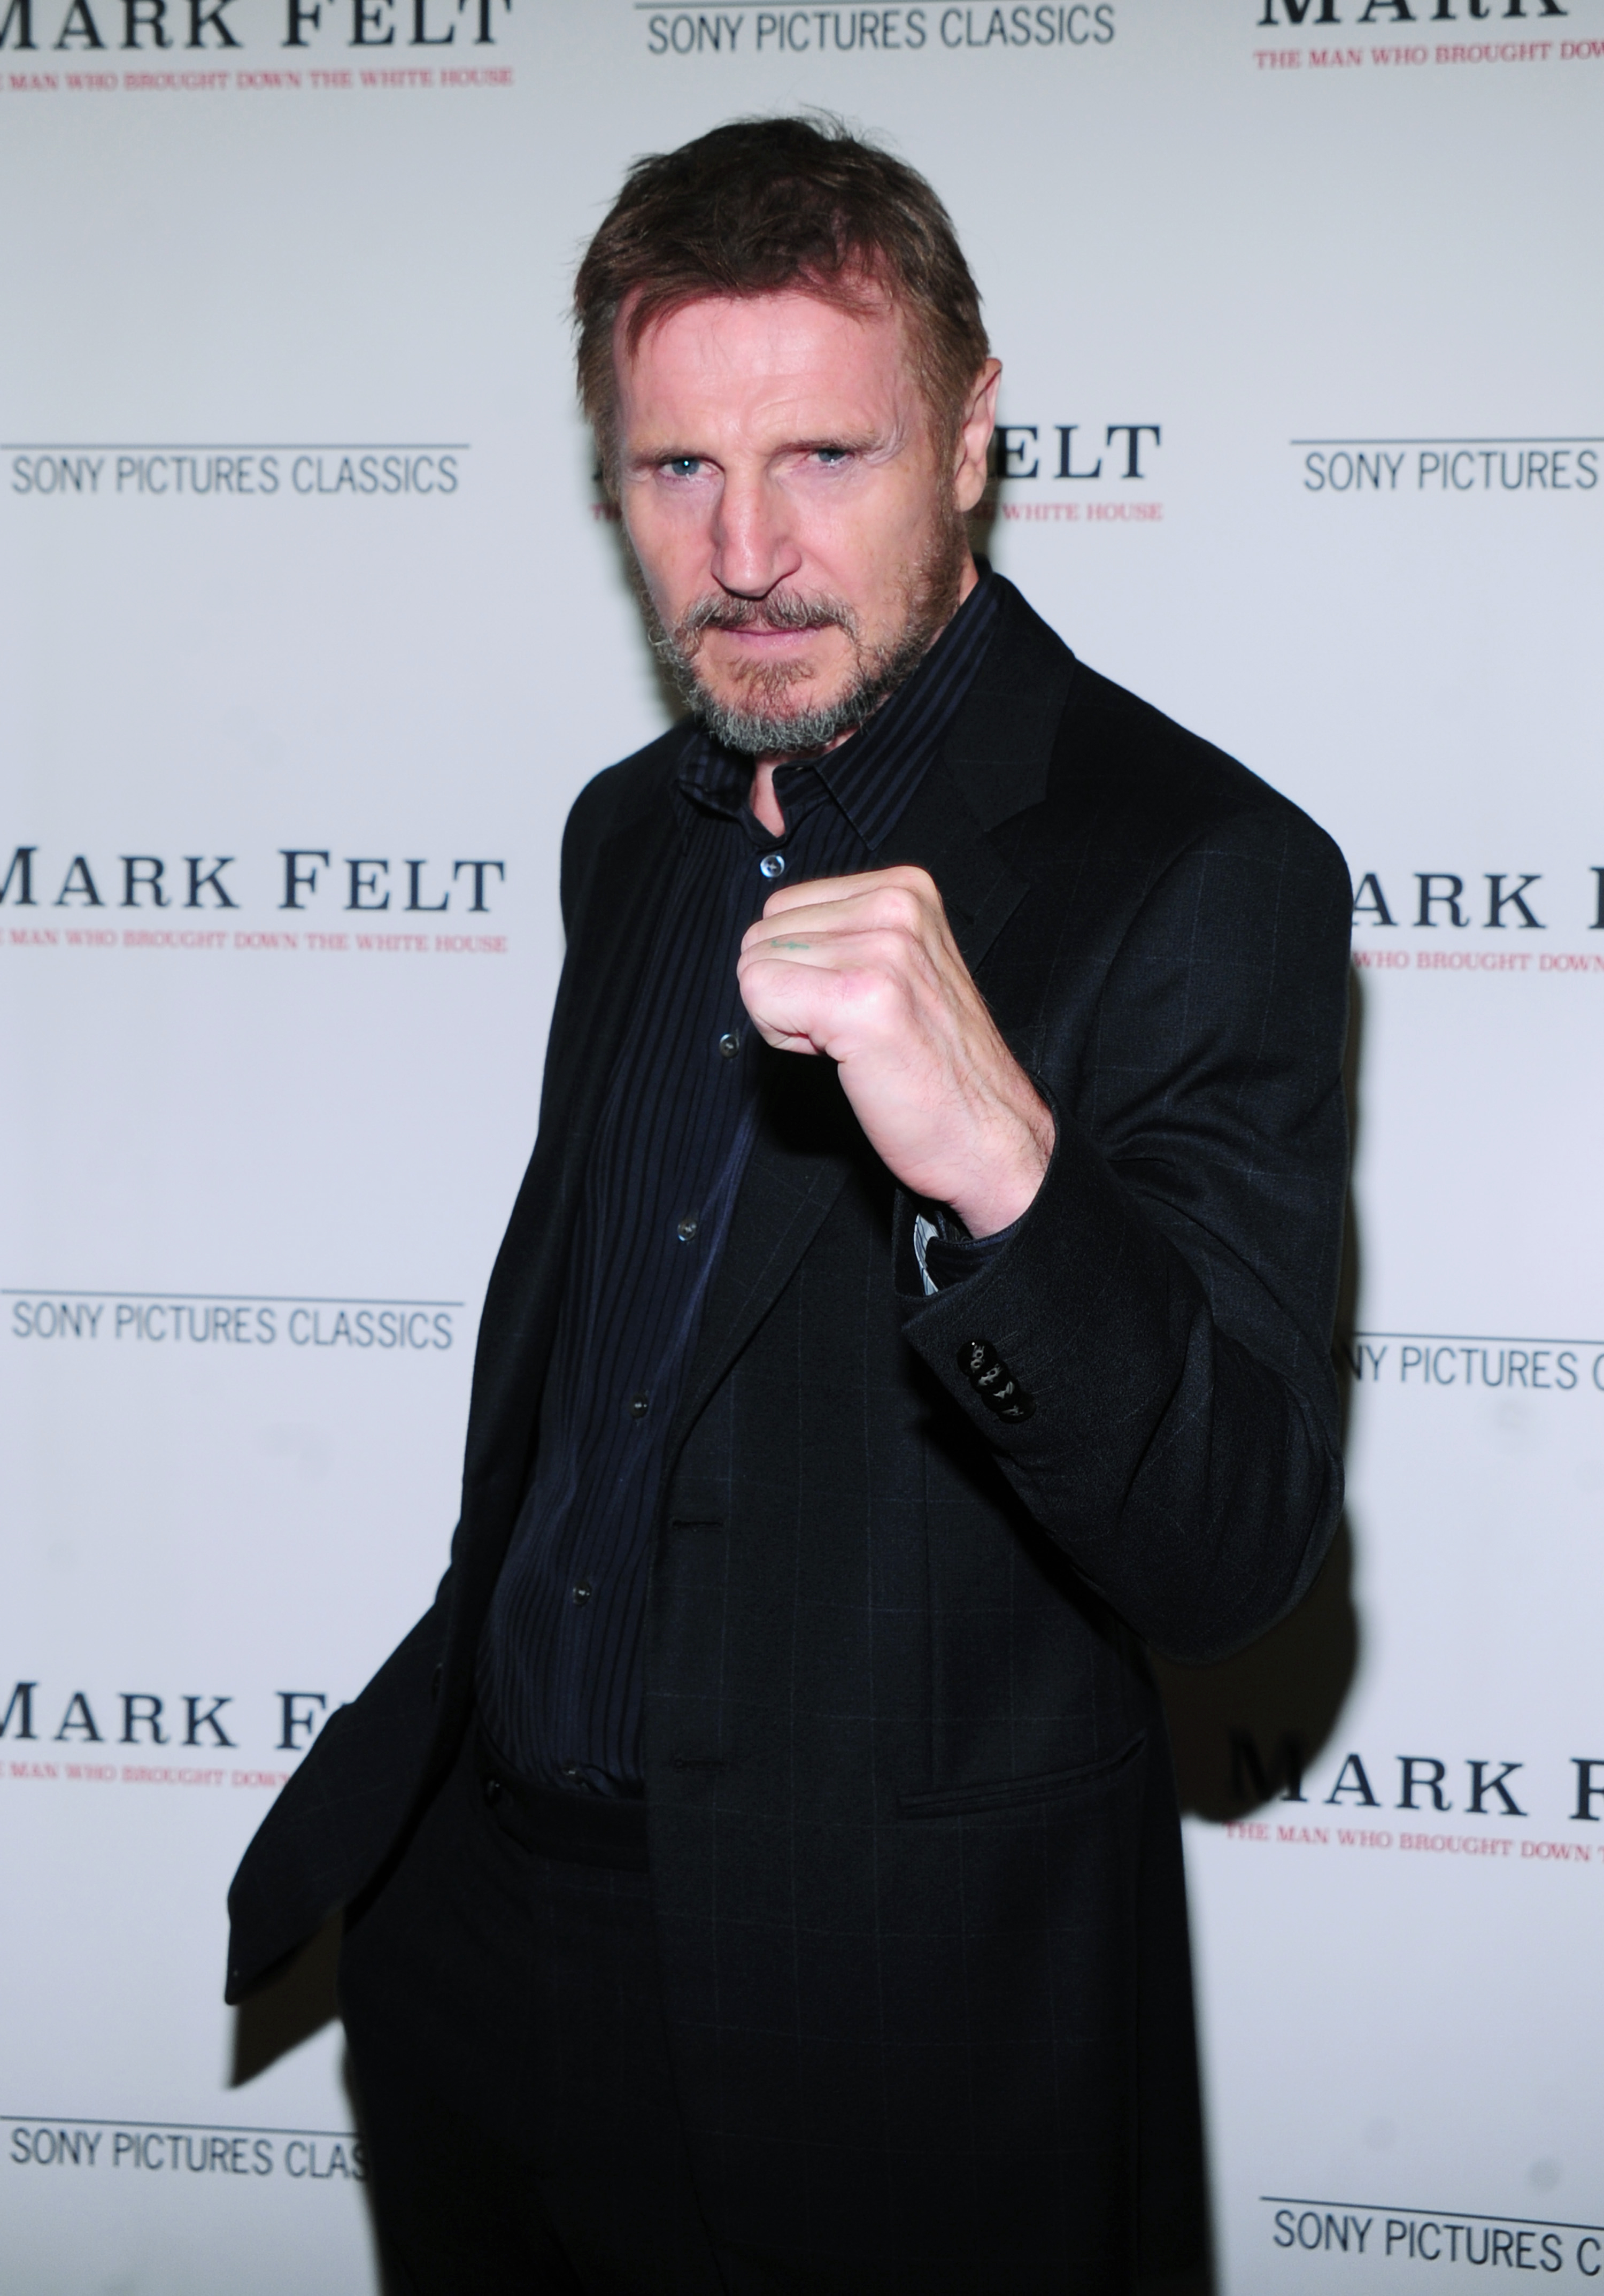 Liam Neeson'Mark Felt: The Man Who Brought Down the White House' film premiere, New York, USA - 21 Sep 2017